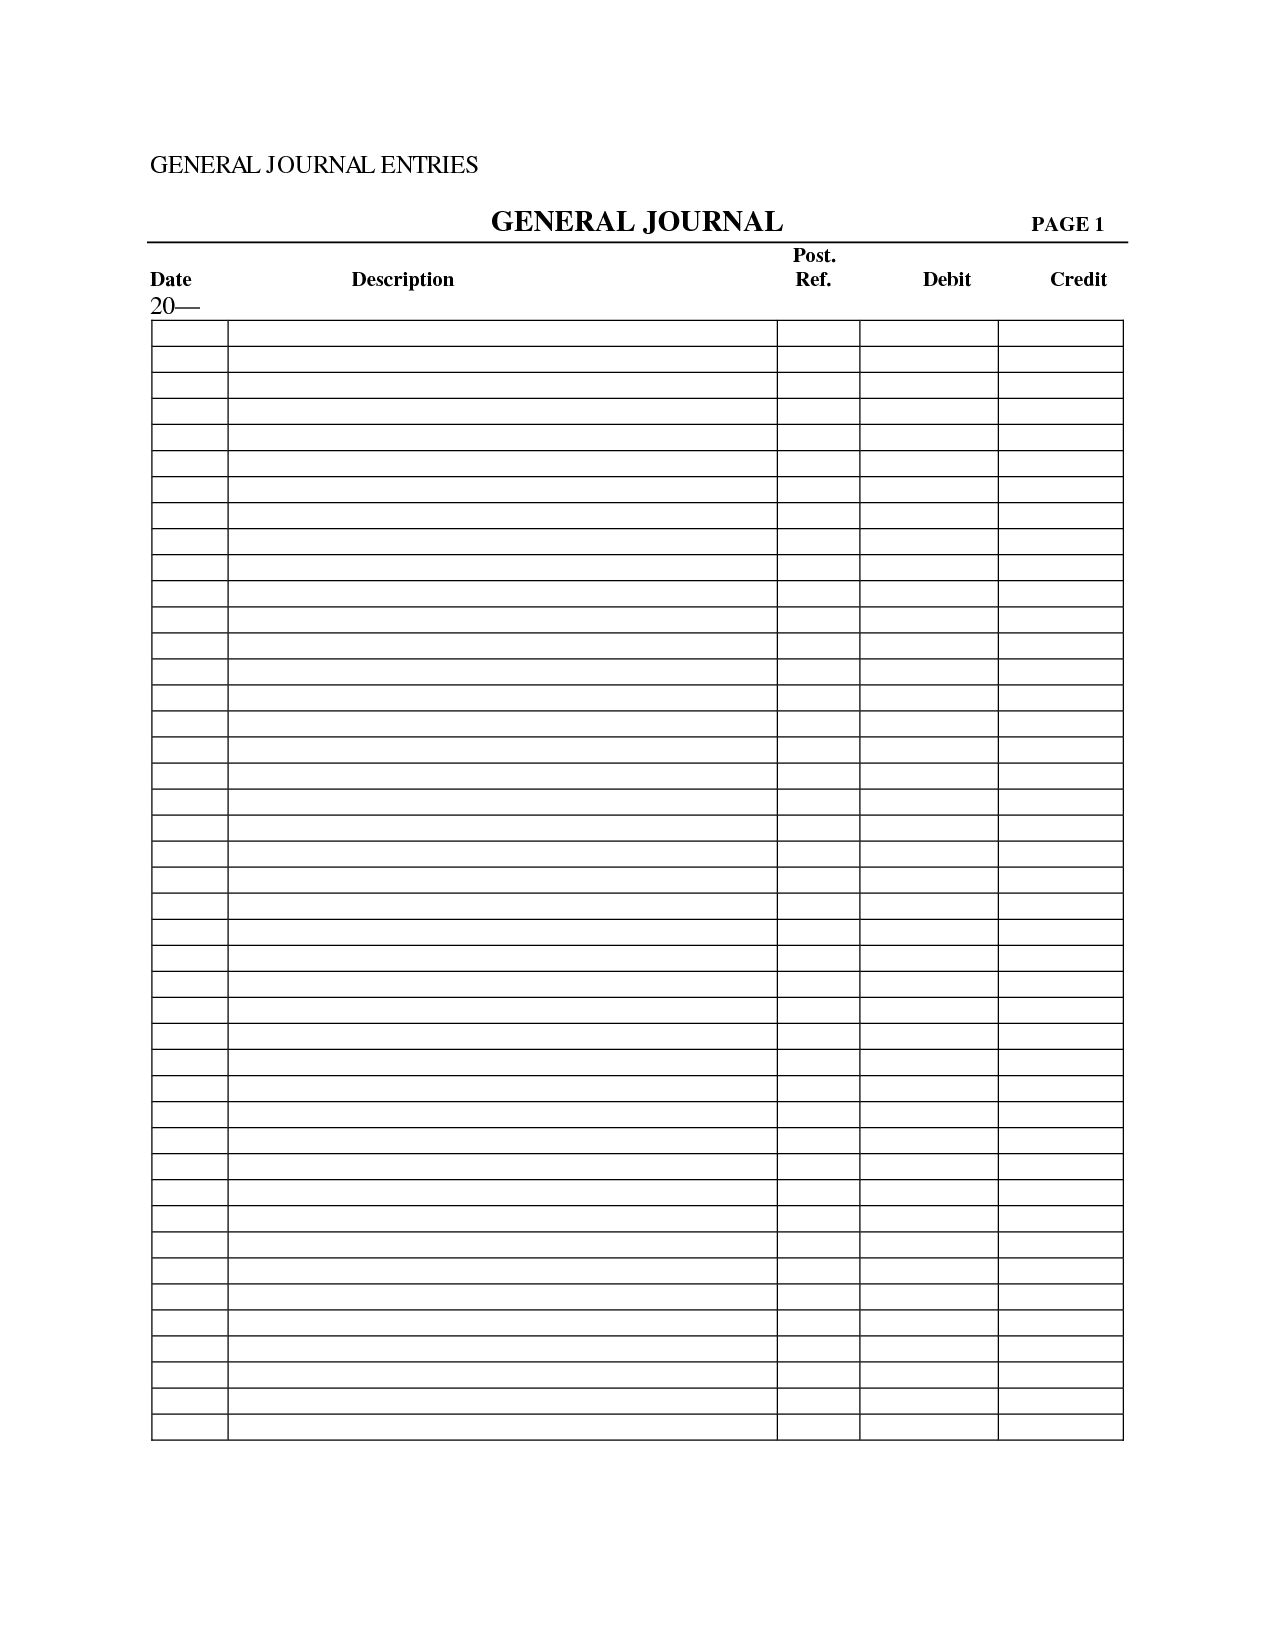 014 Accounting Journal Entry Template General